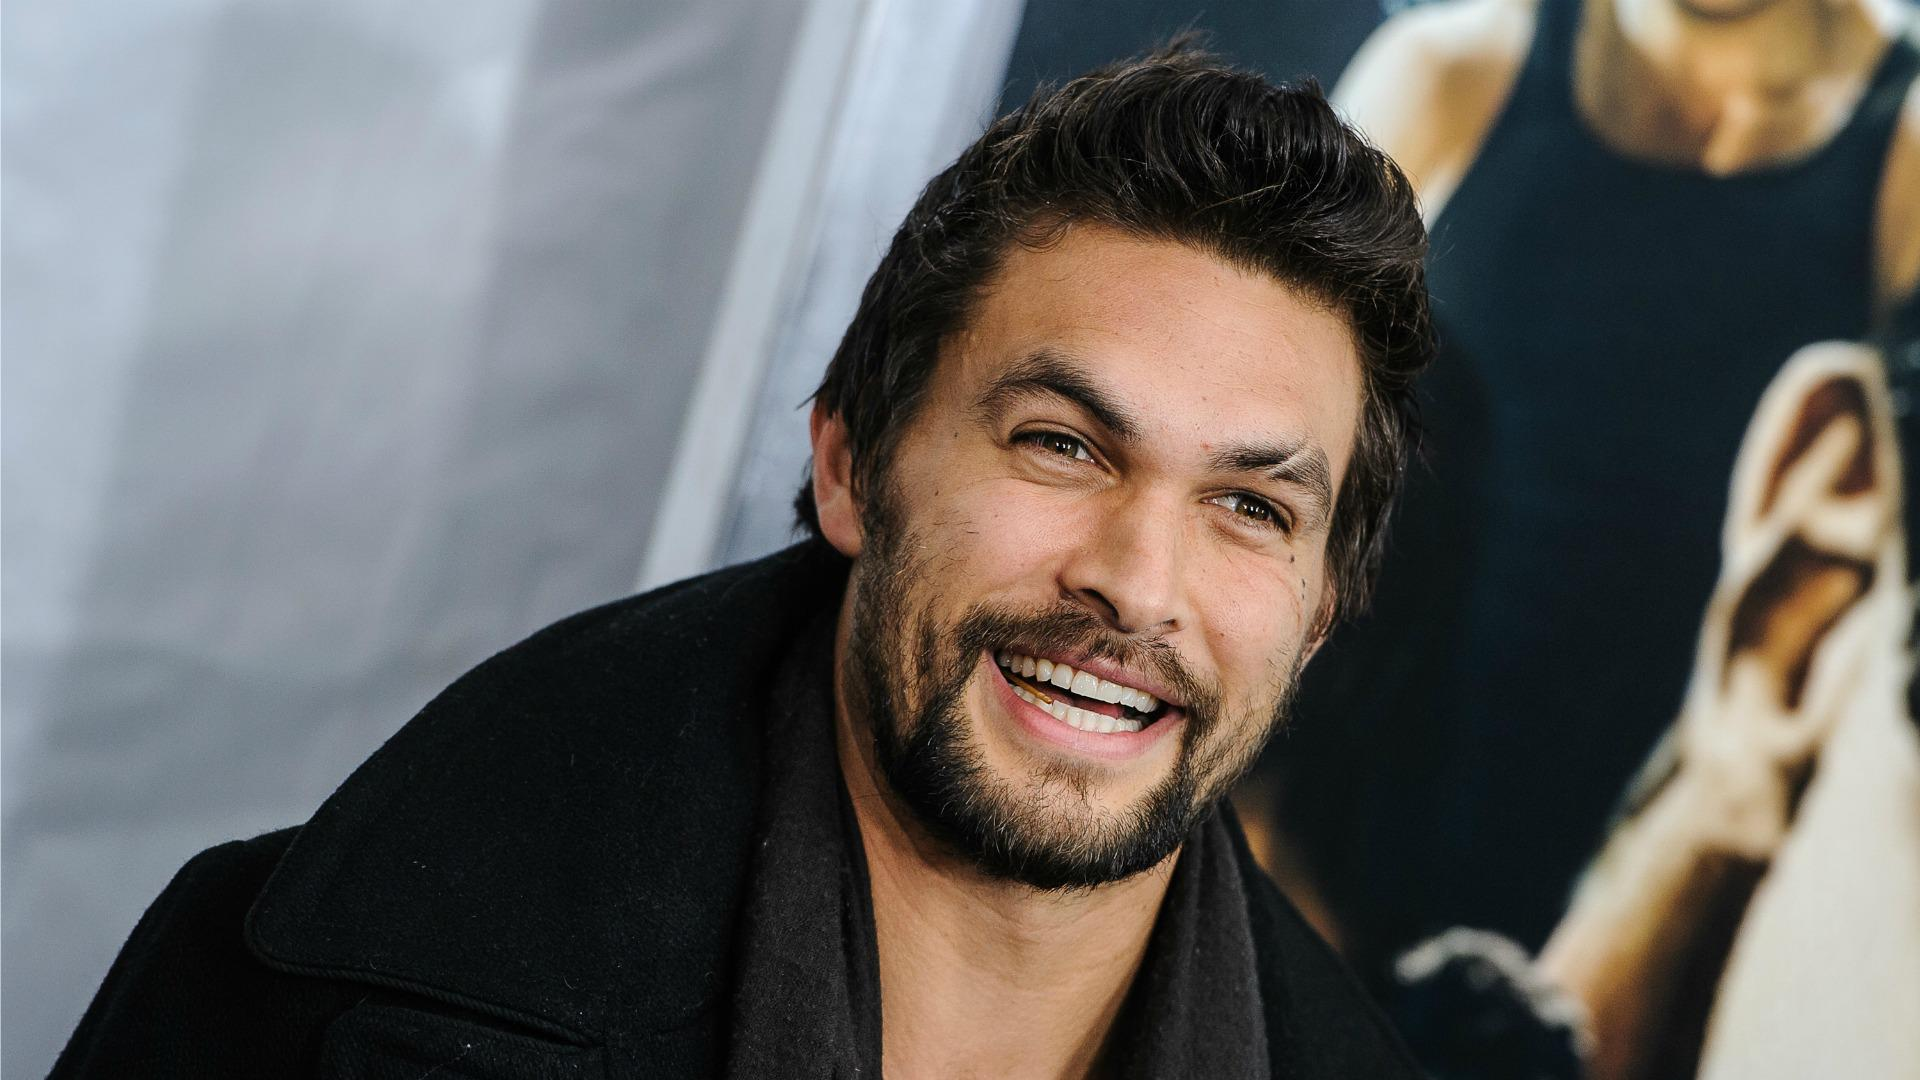 Jason Momoa Celebrity HD Wallpaper 58364 1920x1080 px 1920x1080